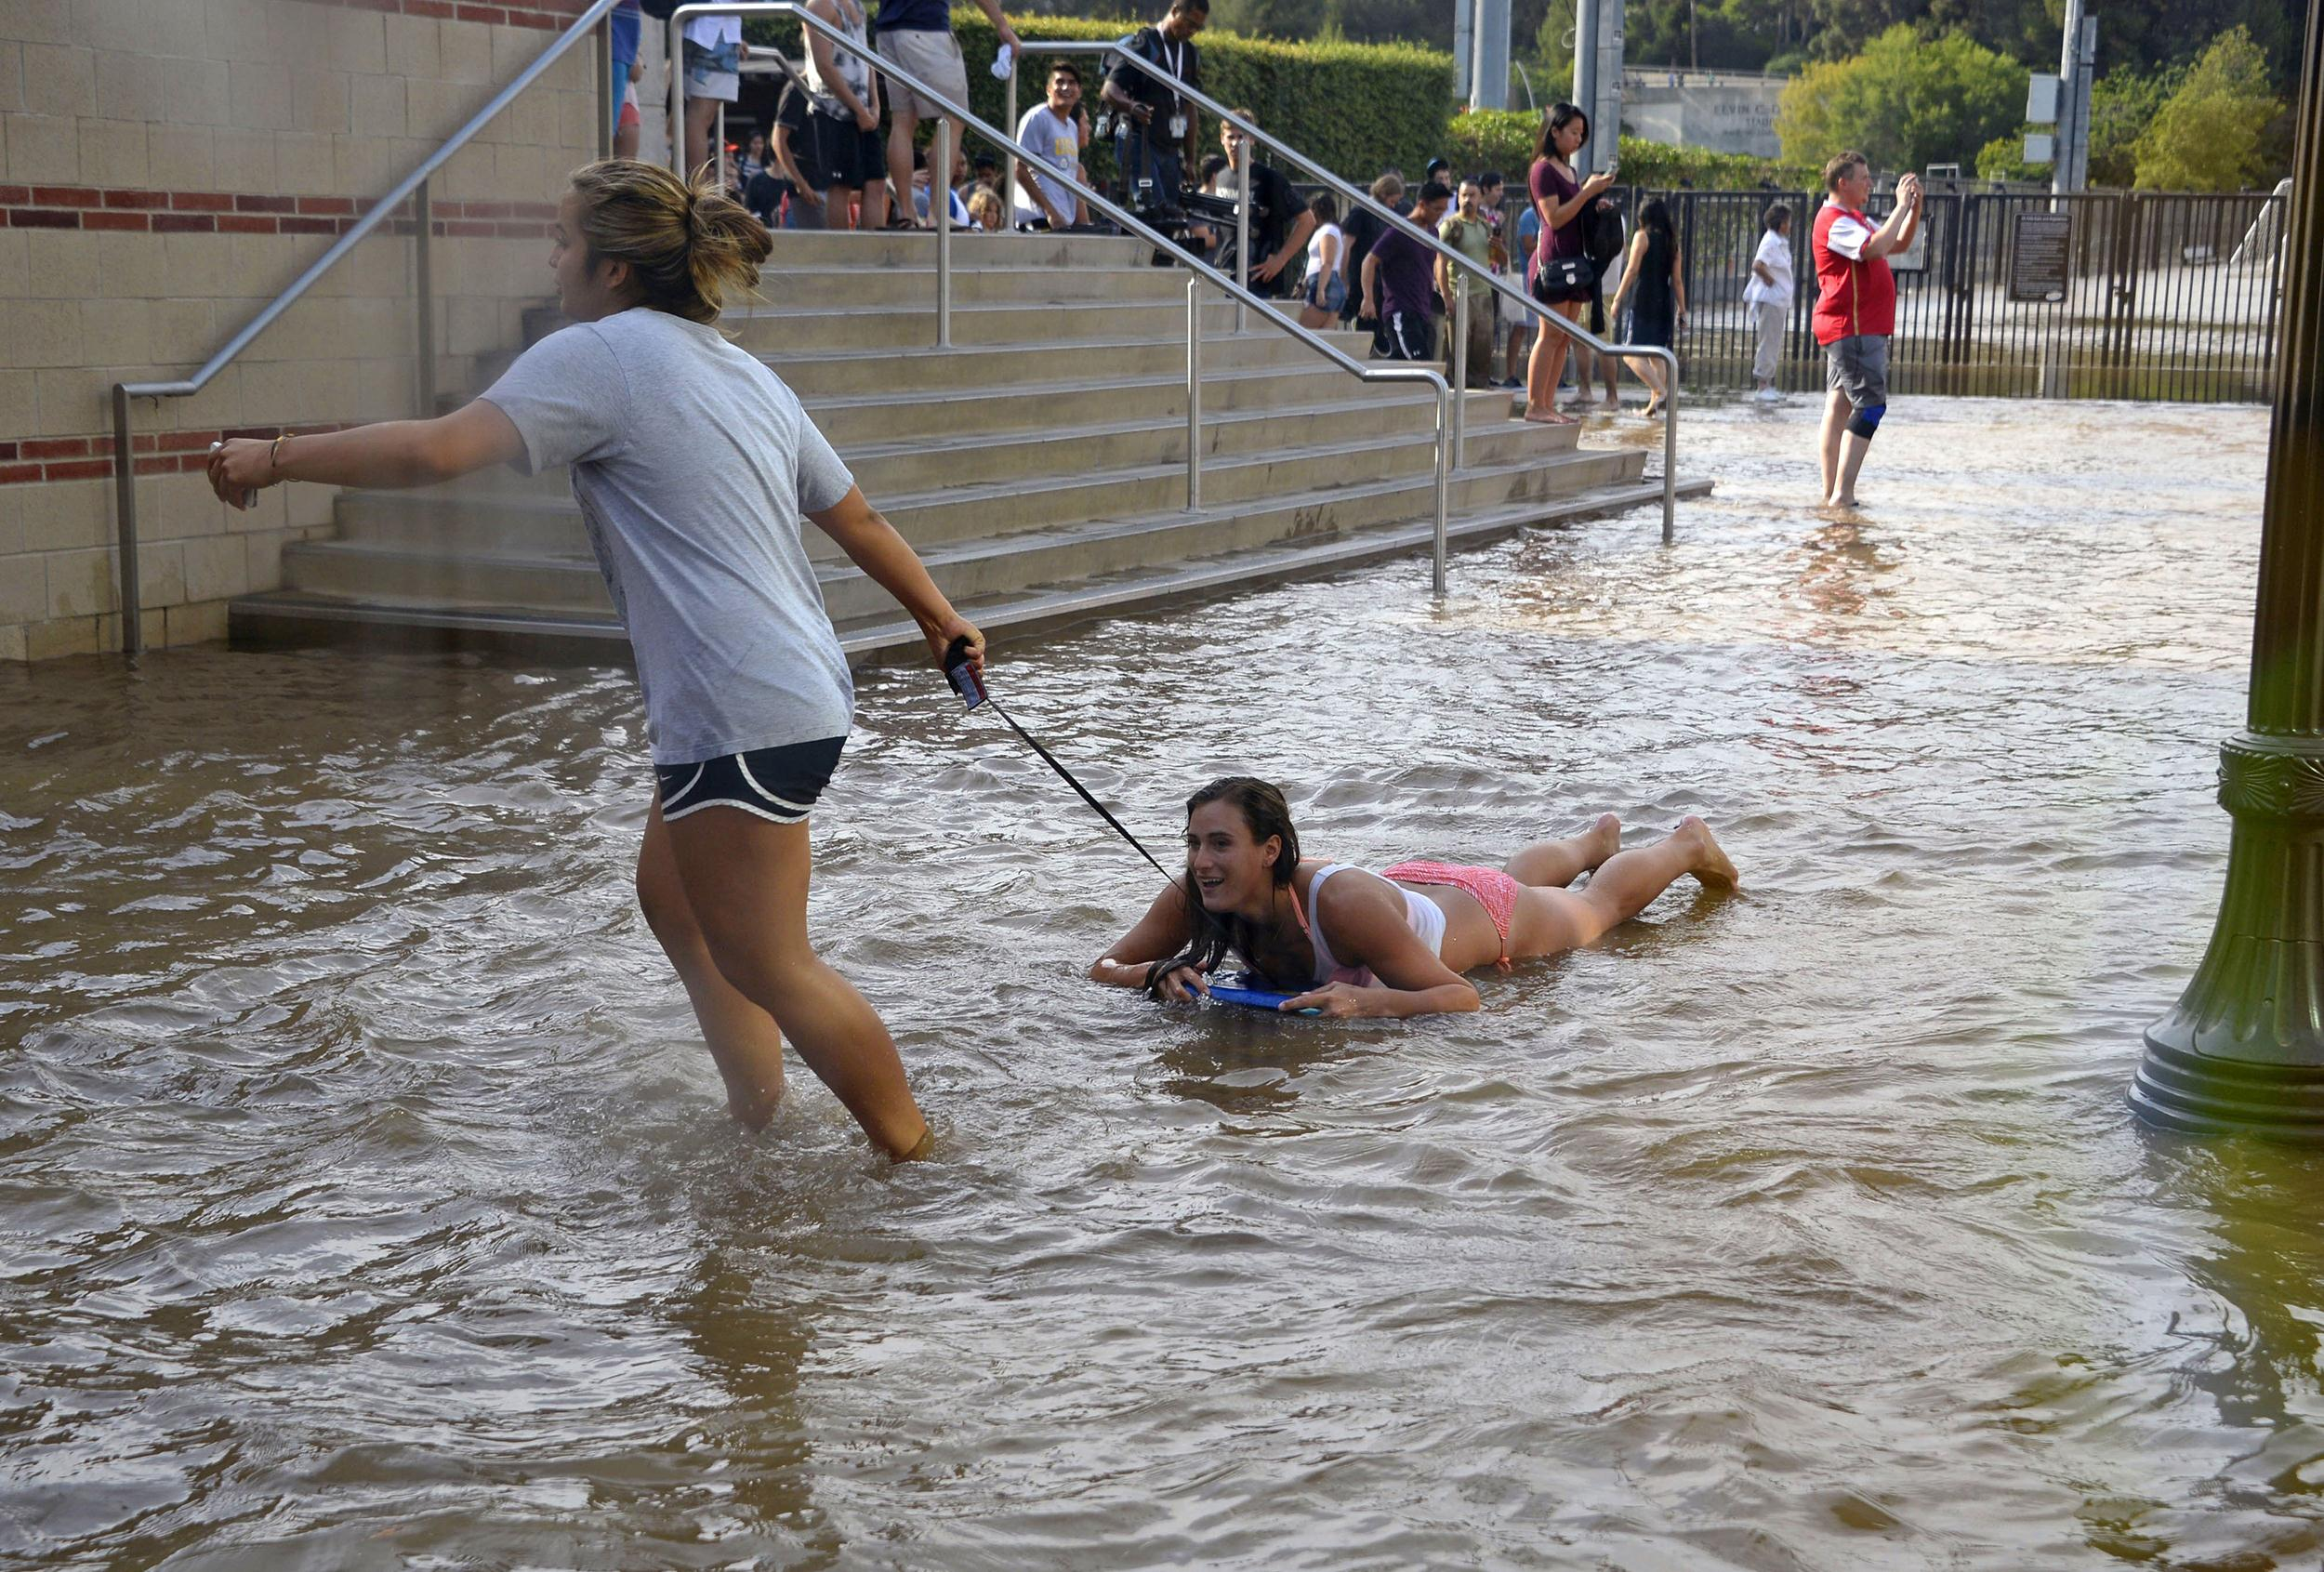 Image: One woman pulls another on a body board through water on the quad of UCLA after flooding from a broken 30-inch water main on July 29.